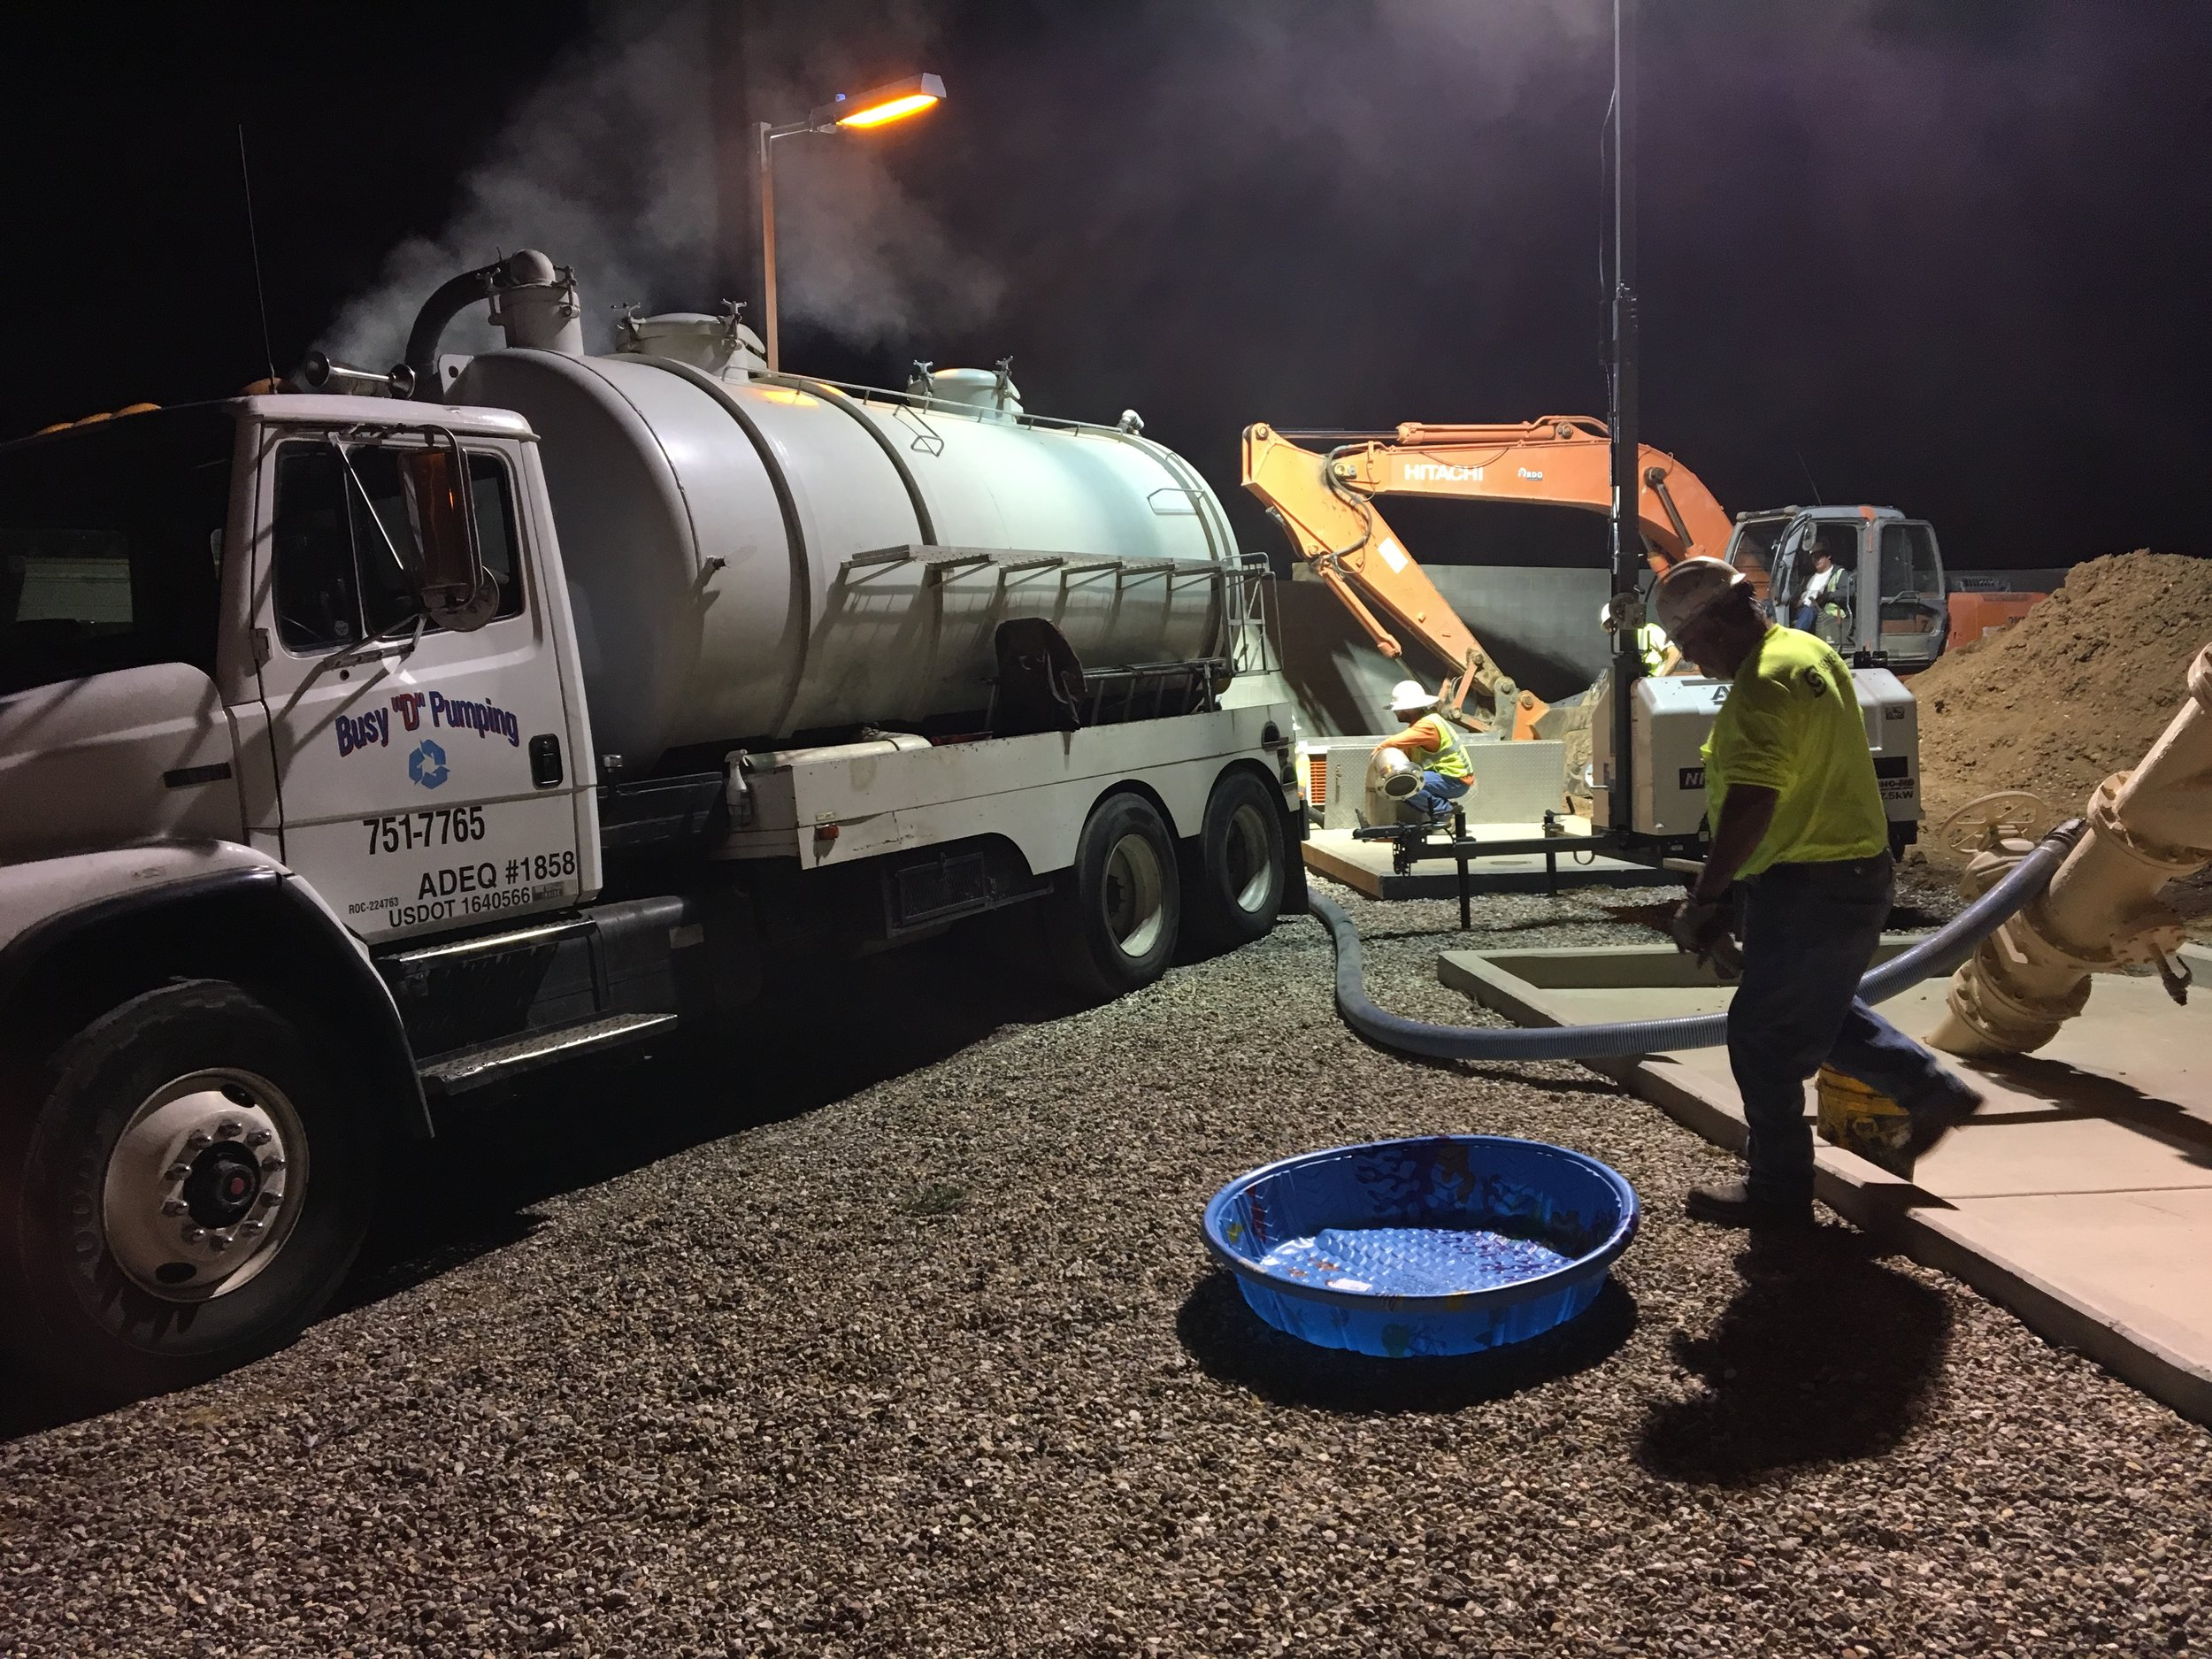 Pumping out the existing force main late at night